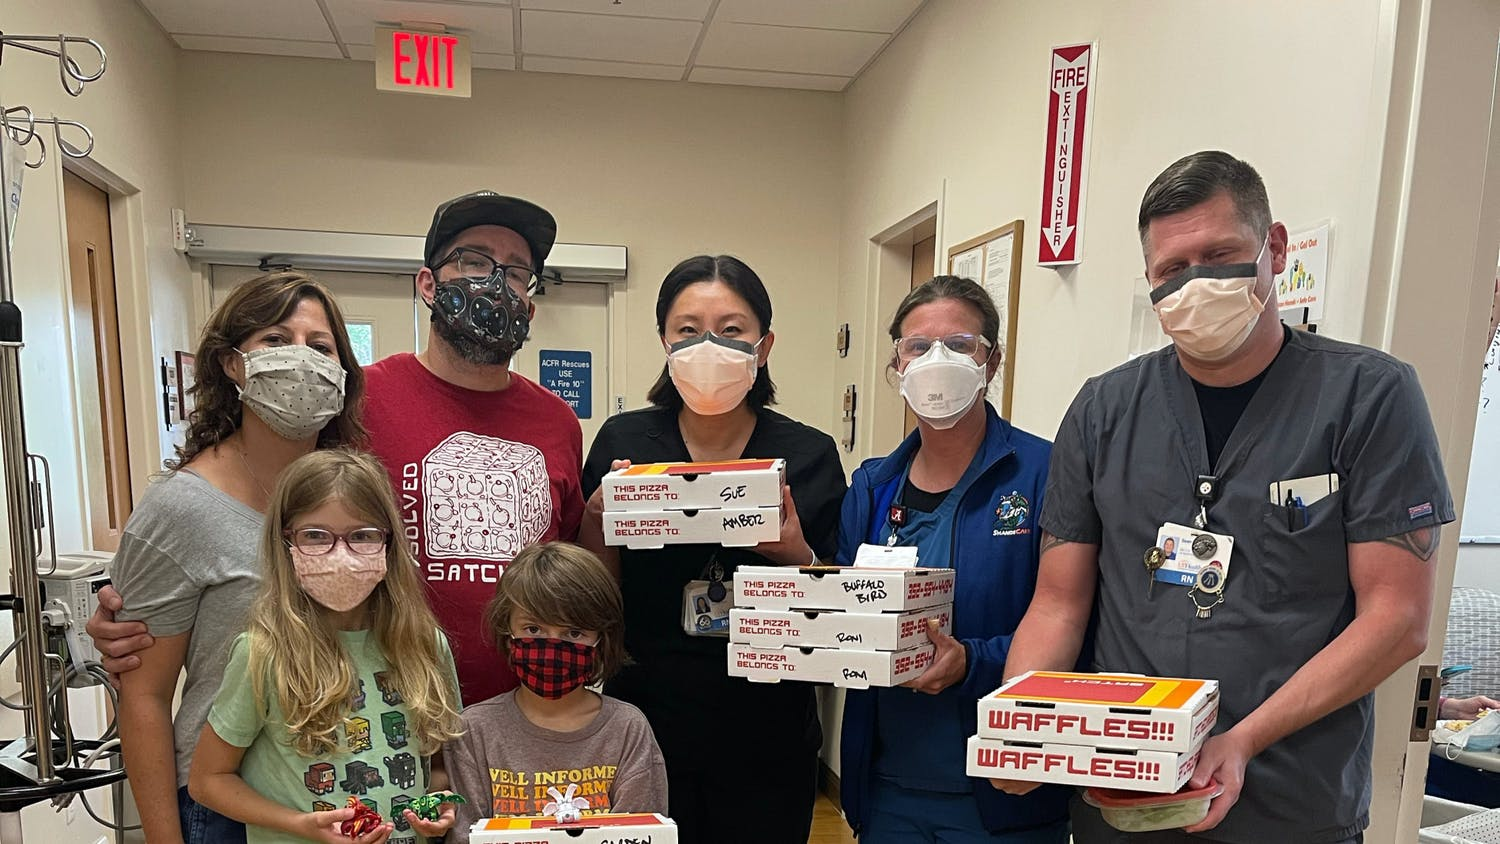 As part of their community outreach efforts, Satch² is donating pizzas to local hospitals to give back to healthcare workers.